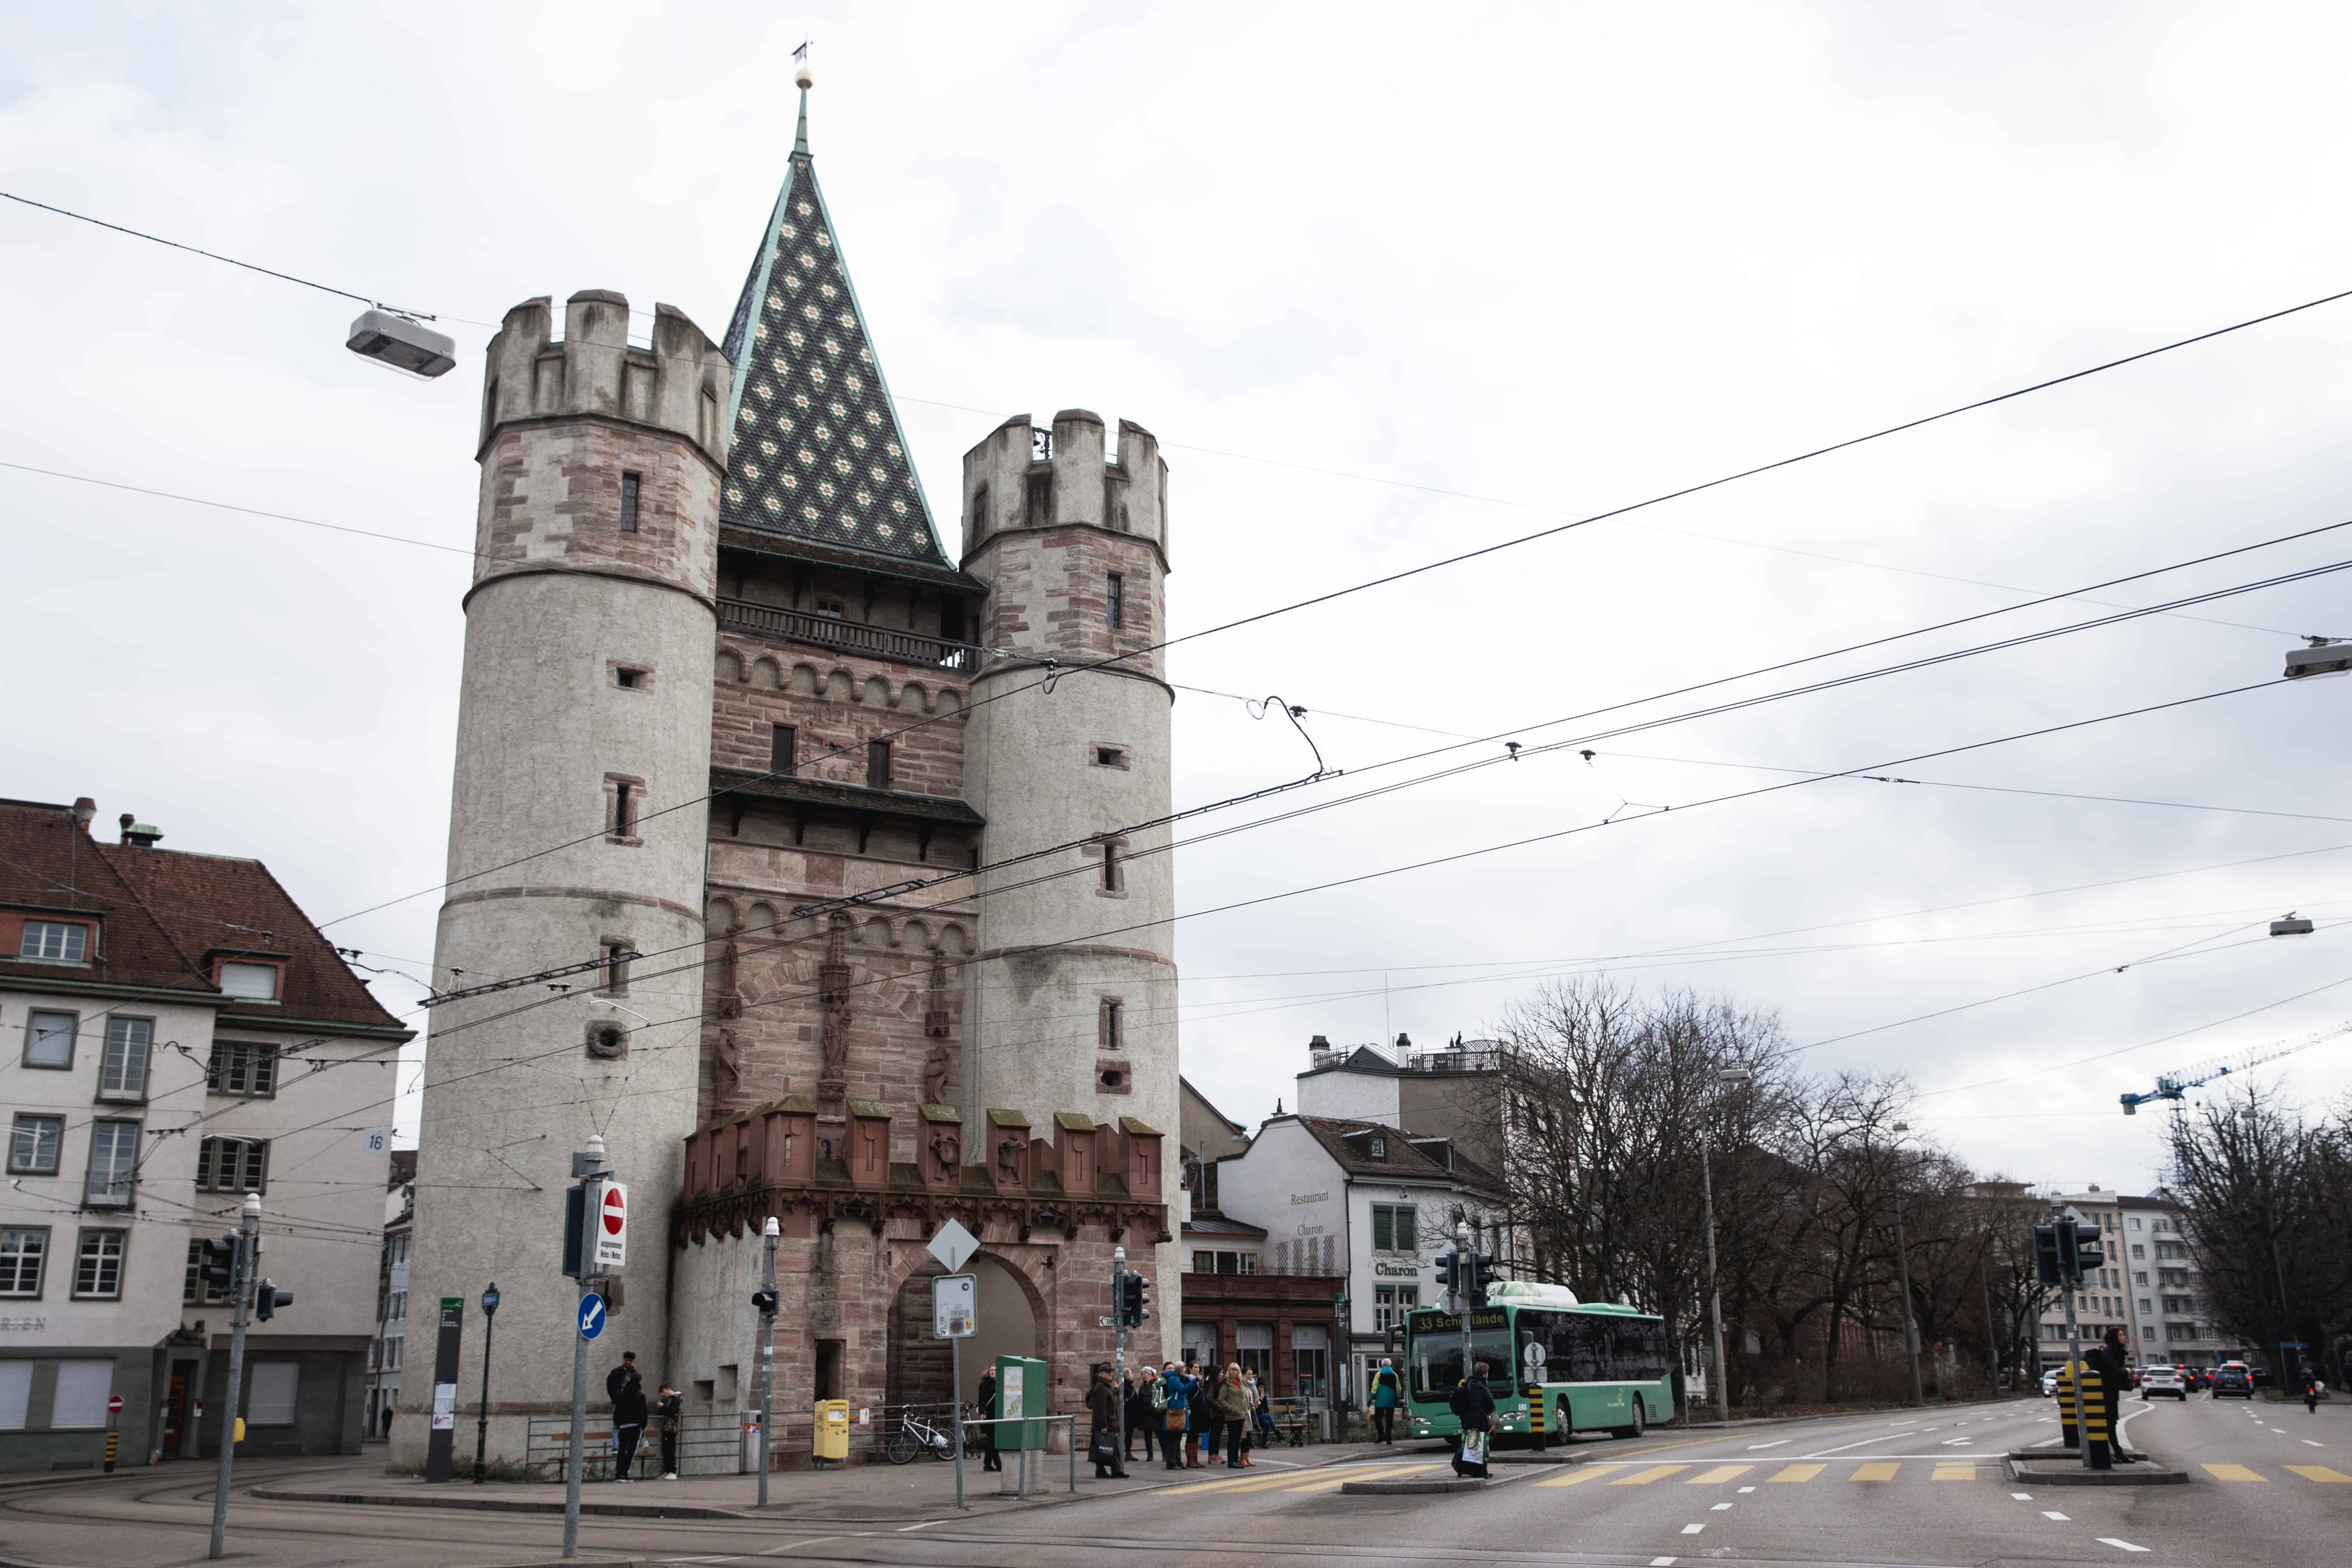 The Spalentor (Gate of Spalen) is one of the three city gates that still remains from the original Basel city wall in Basel, Switzerland